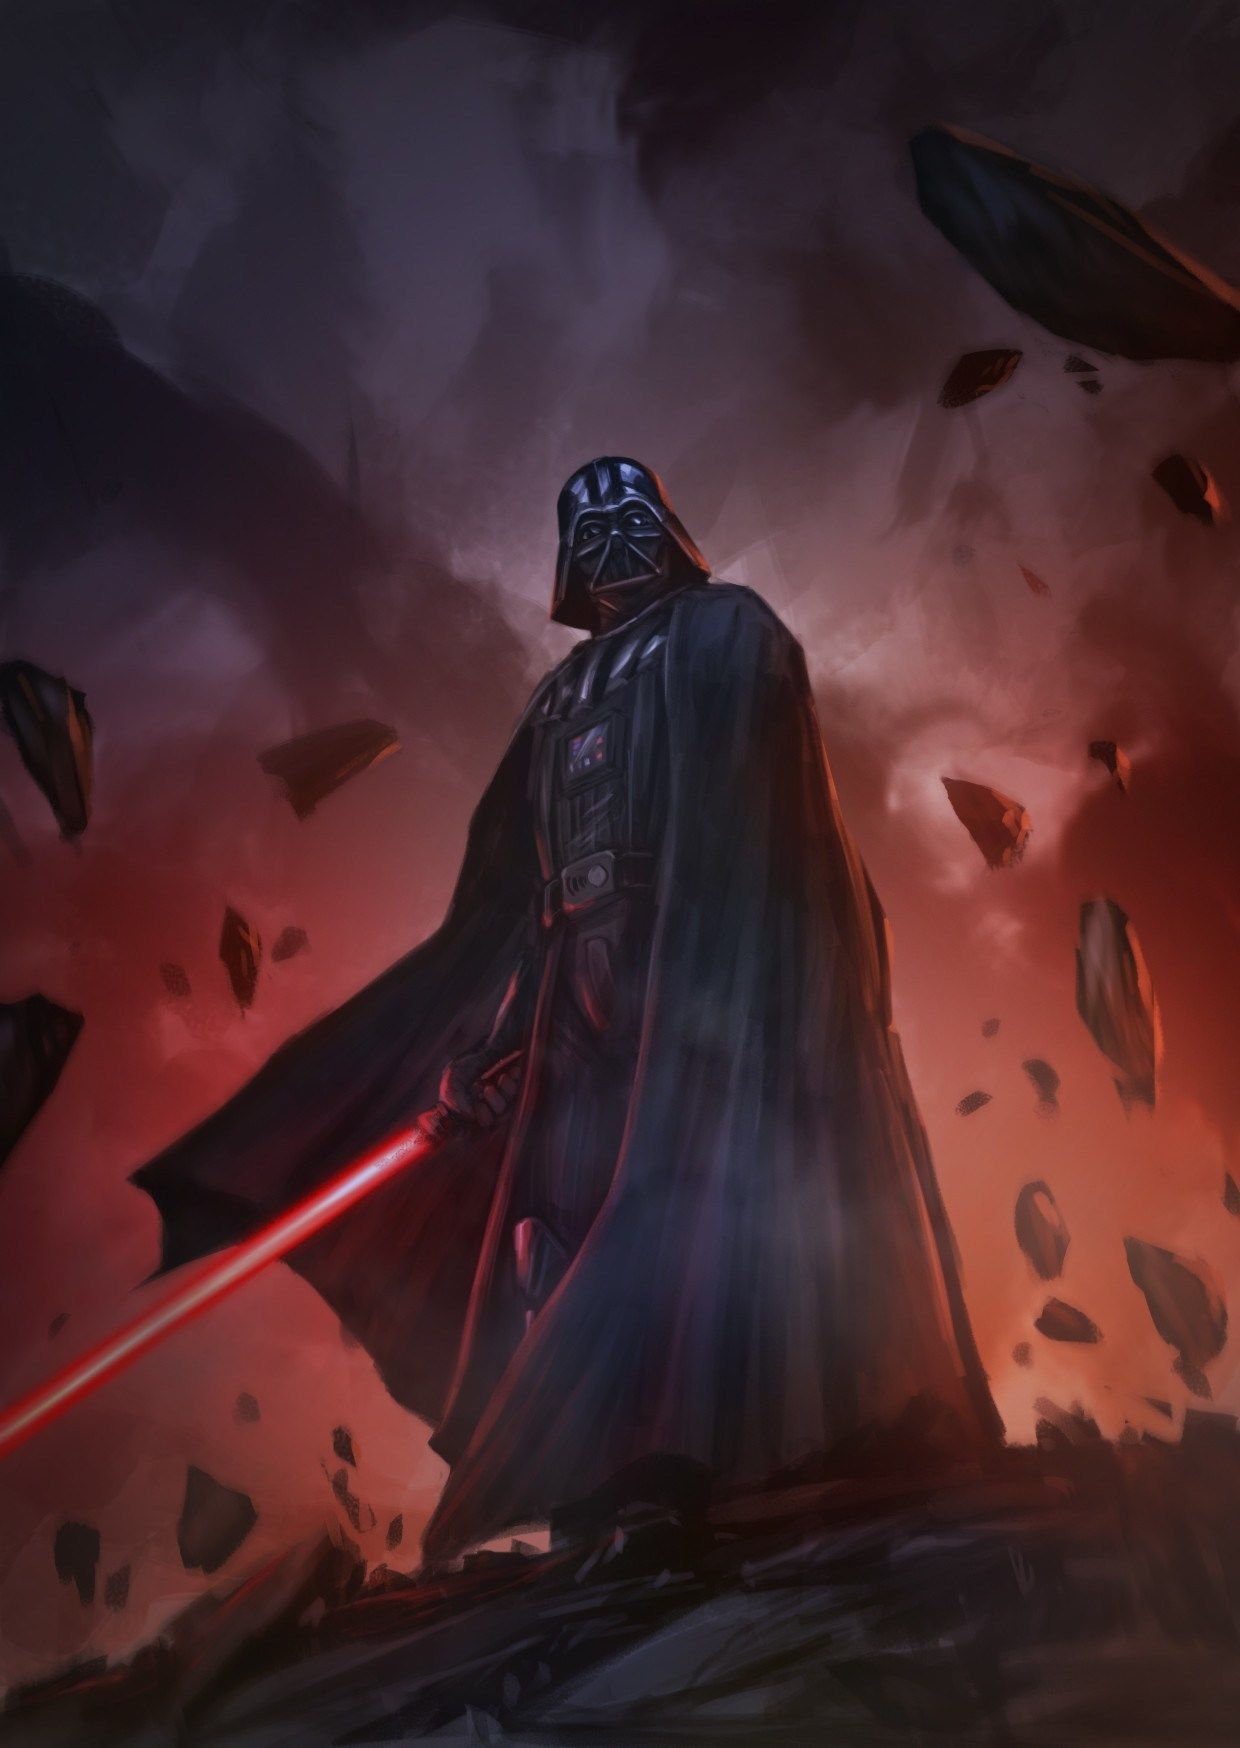 Darth Vader using a lightsaber. Art by Fadly Romdhani. See the top-10 Star Wars art of December 2016 here.